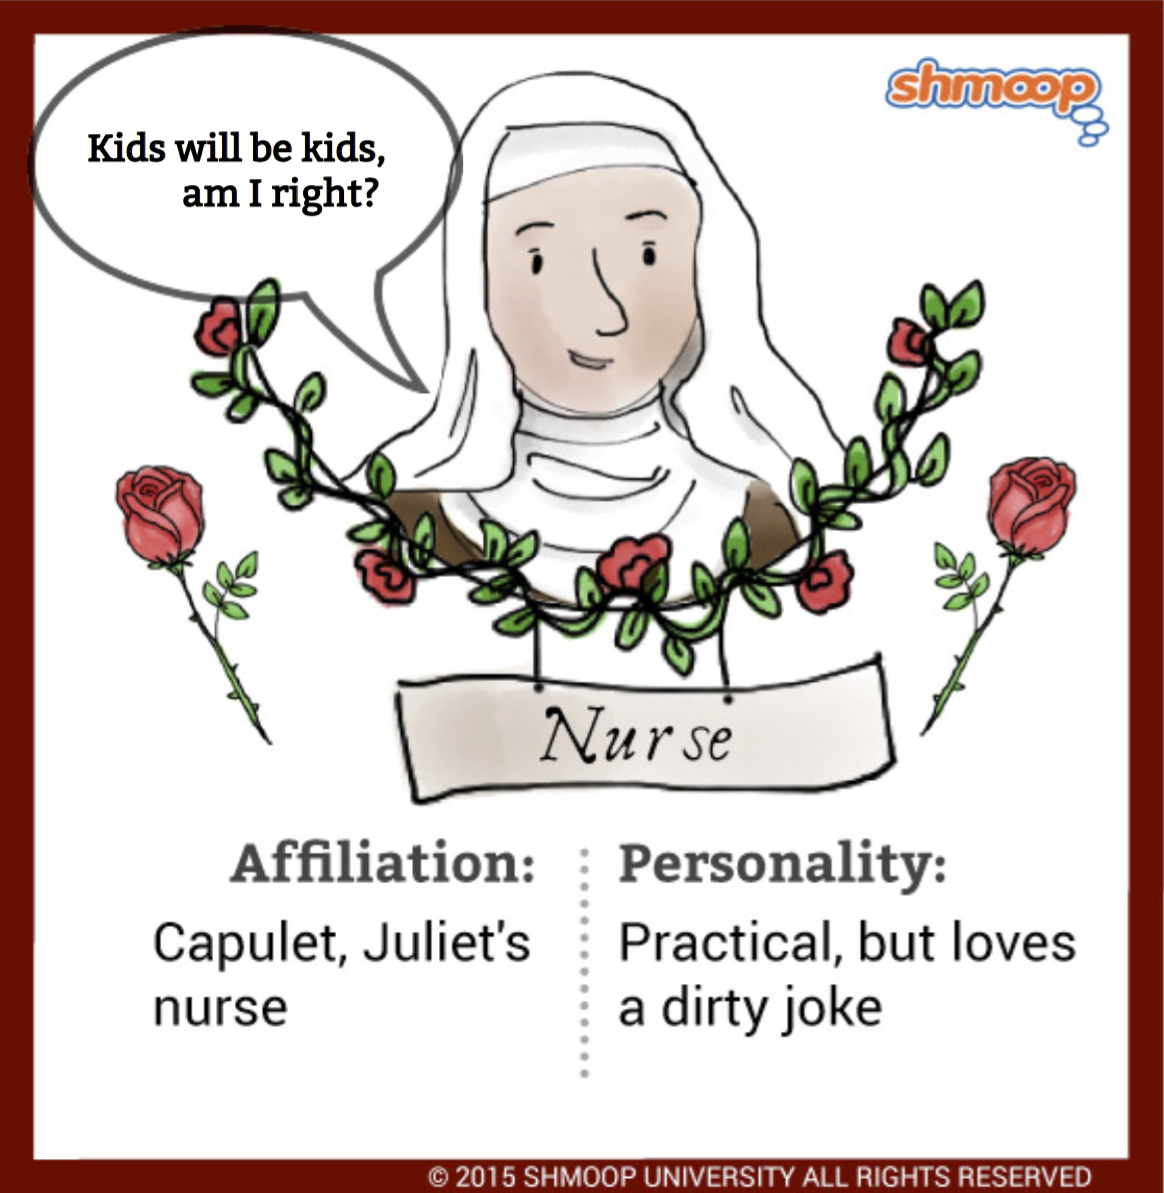 essays on the nurse in romeo and juliet Had the nurse and the friar not made the decisions they did, the tale of romeo and juliet might have not ended in tragedy.